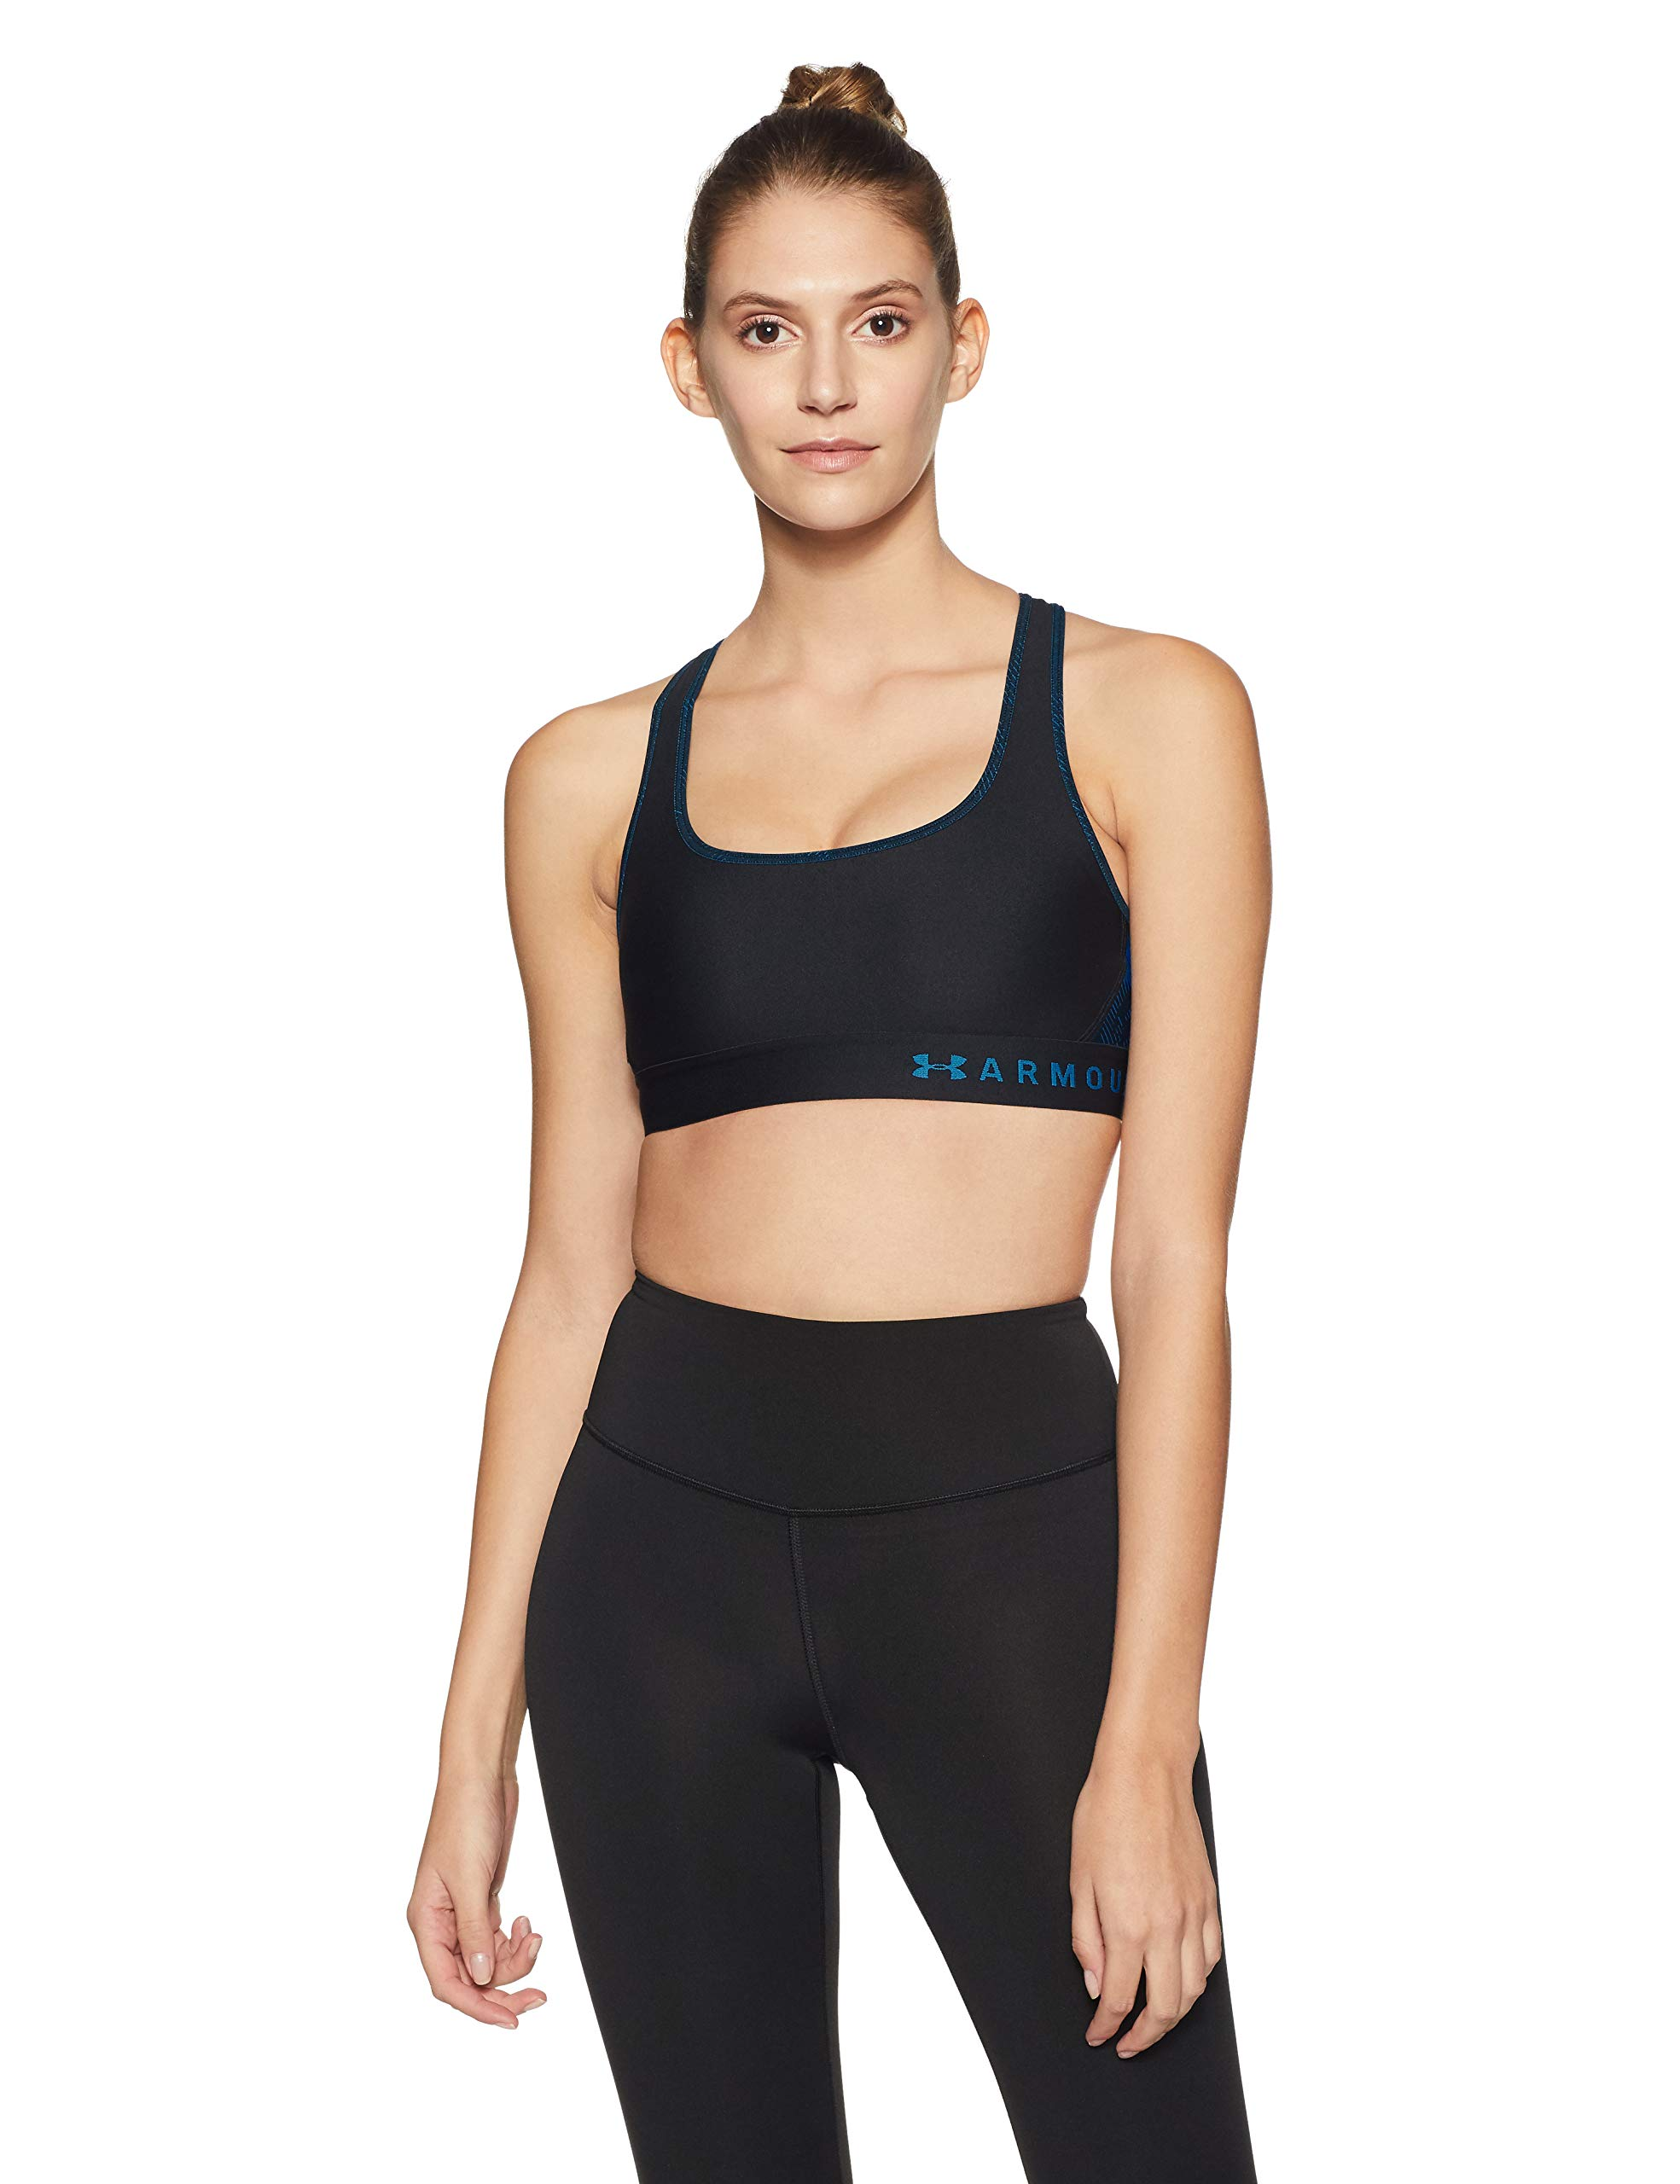 Under Armour Women's Armour Mid Crossback Print Sports Bra, Black (009)/Blue Circuit, X-Small